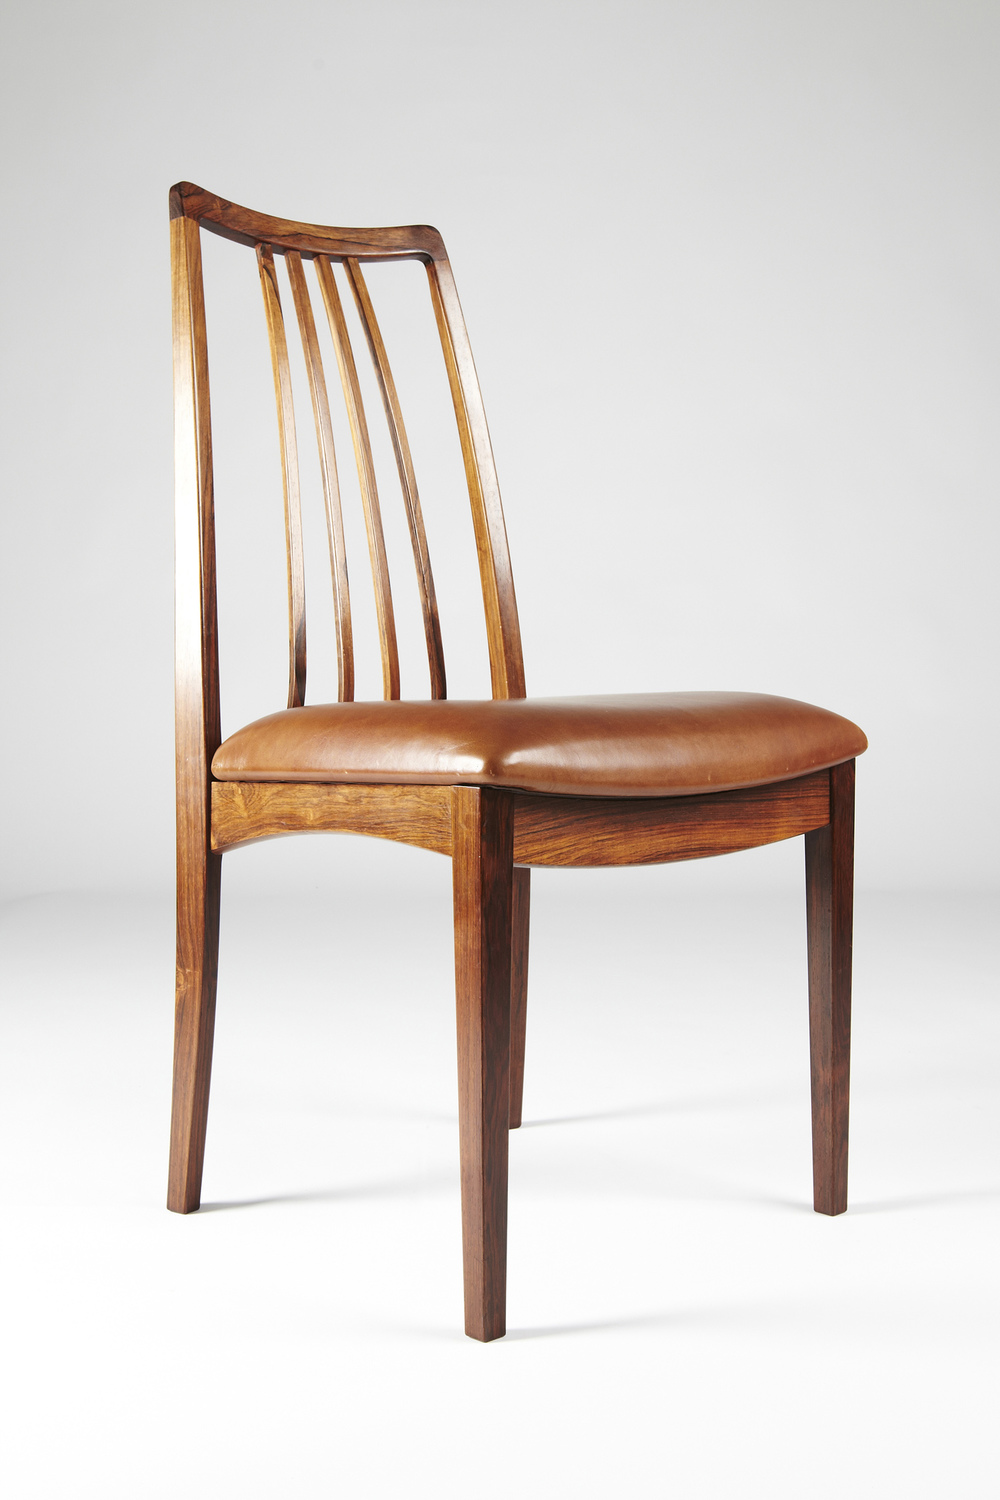 Koefoed 1959 dining chair2_resize.jpg